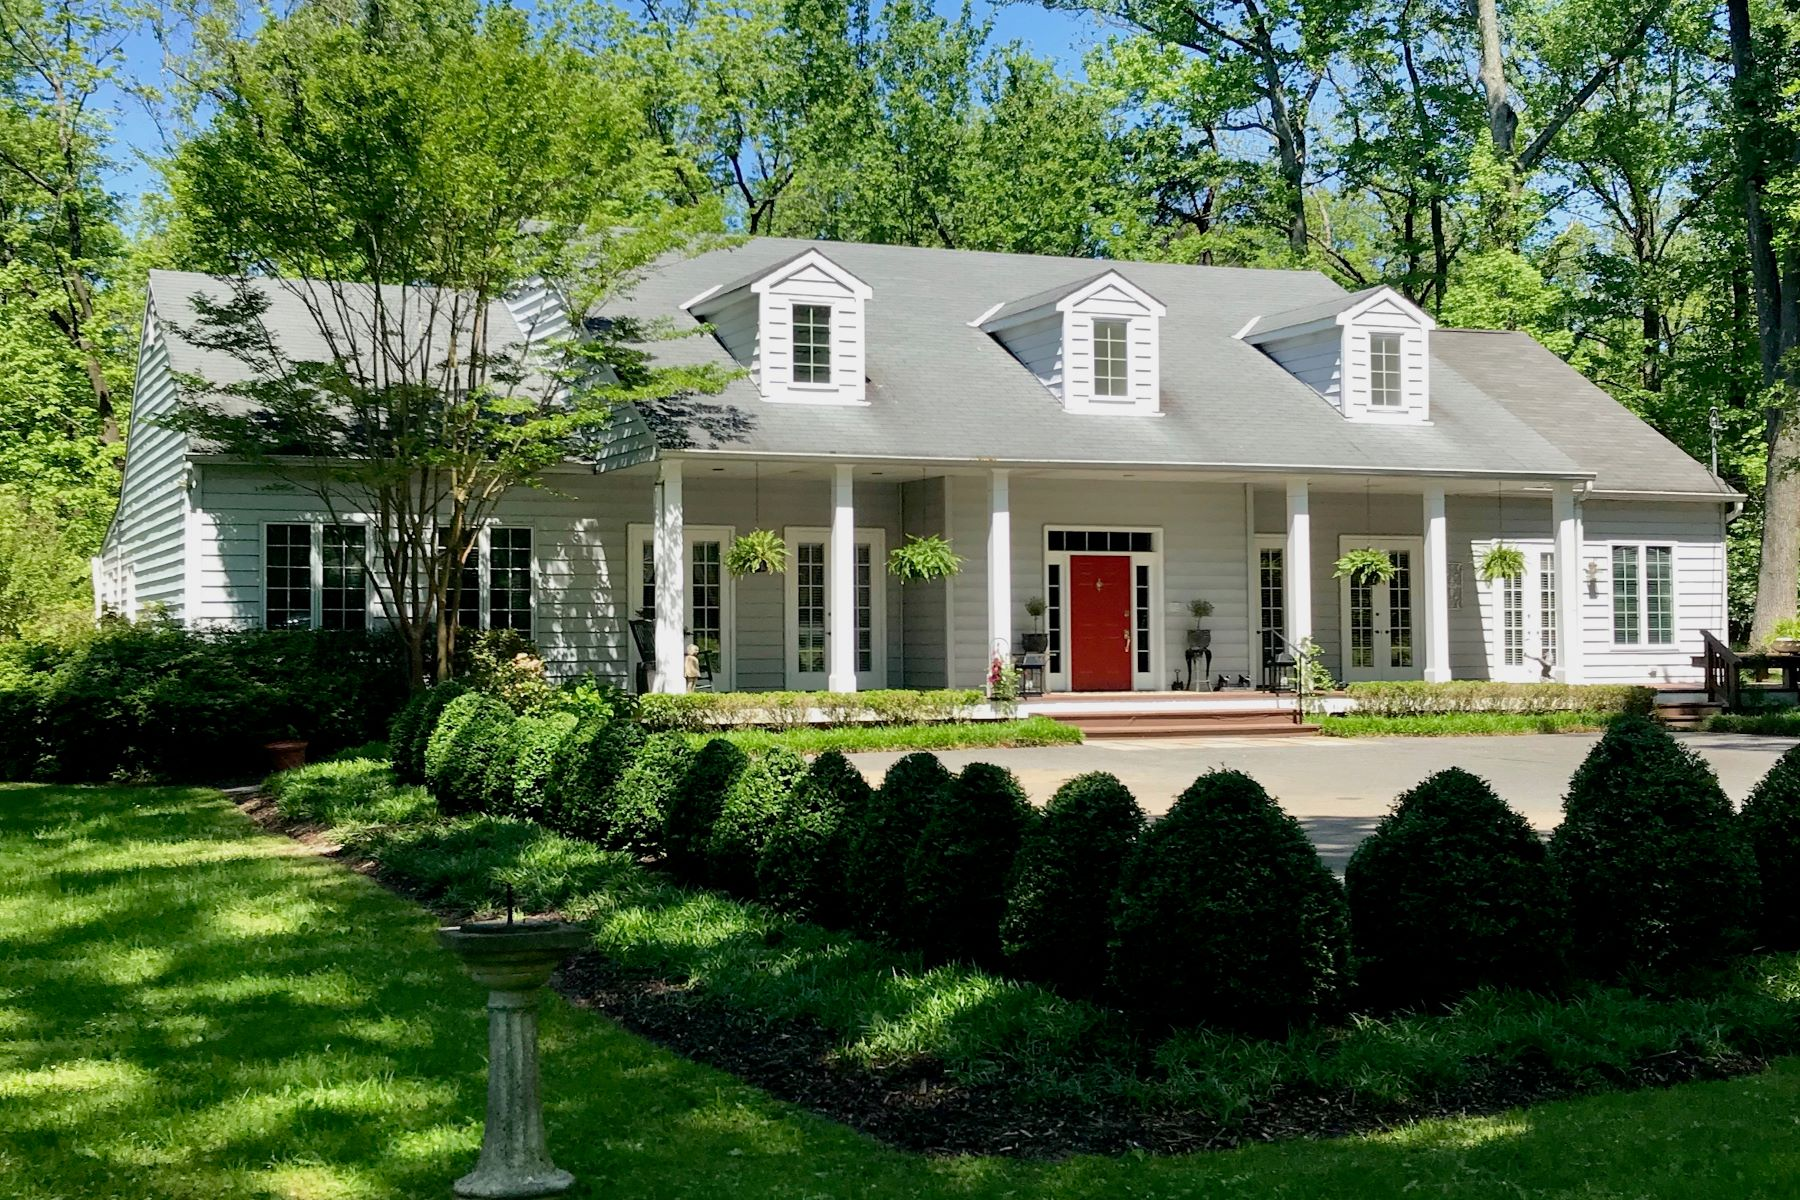 Single Family Homes for Active at Greenspring Valley 8 Chittenden Lane Owings Mills, Maryland 21117 United States